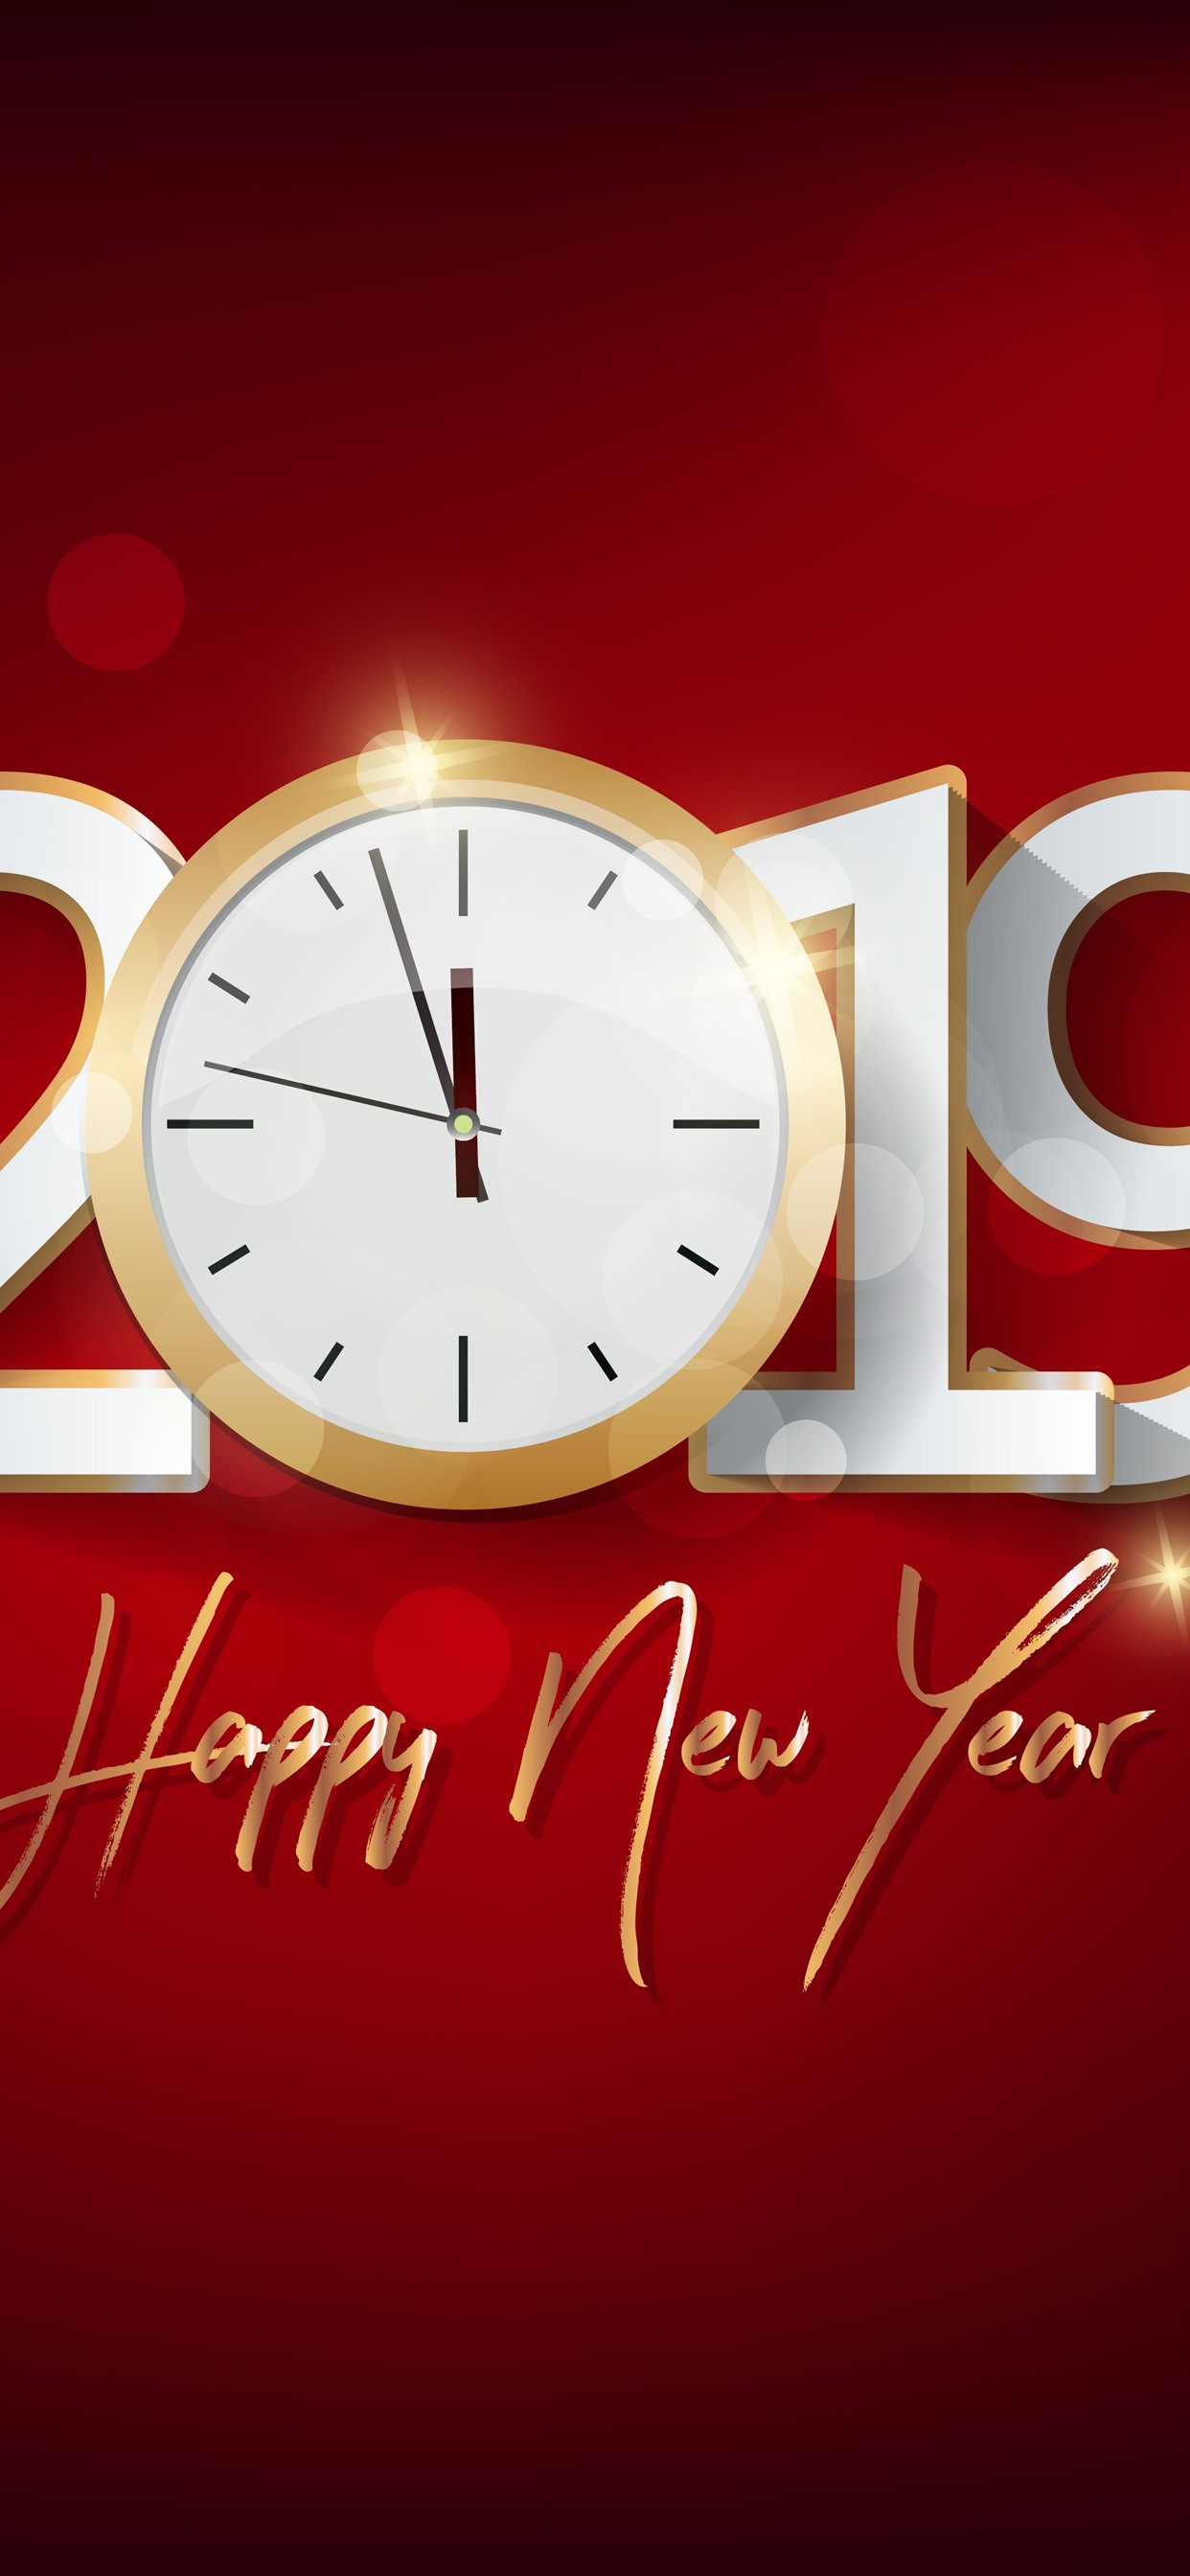 Happy New Year 2019 Clock Red Background 1242x2688 Iphone